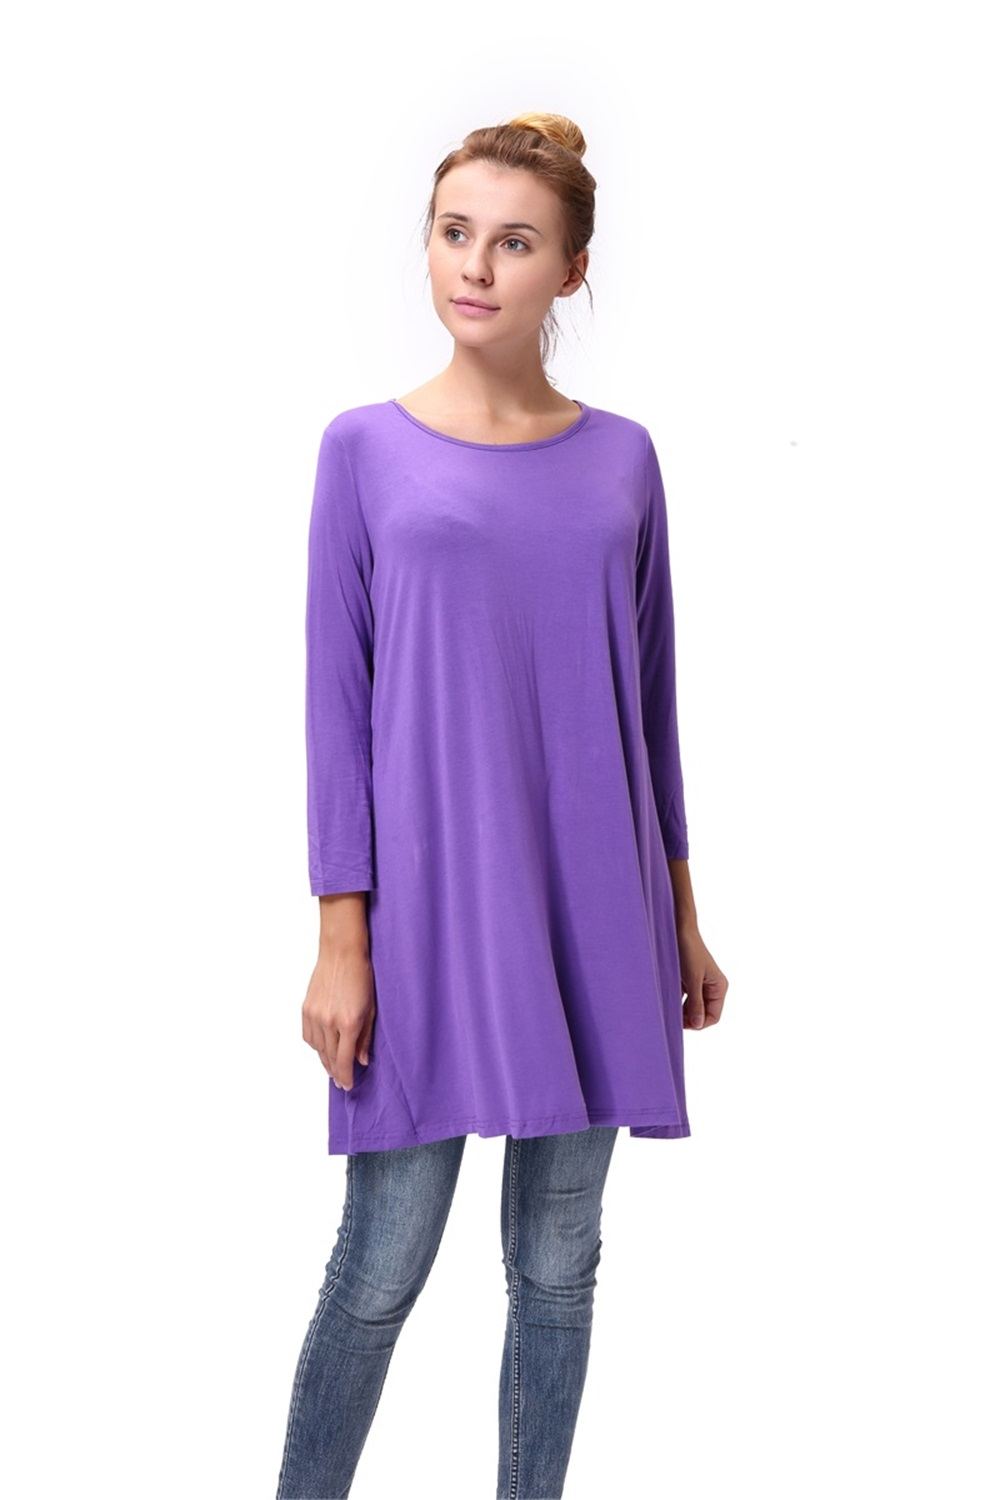 Women-Casual-Round-Neck-3-4-Long-Sleeve-Trapeze-Tunic-Top-Lady-Loose-Fit-Dress thumbnail 43